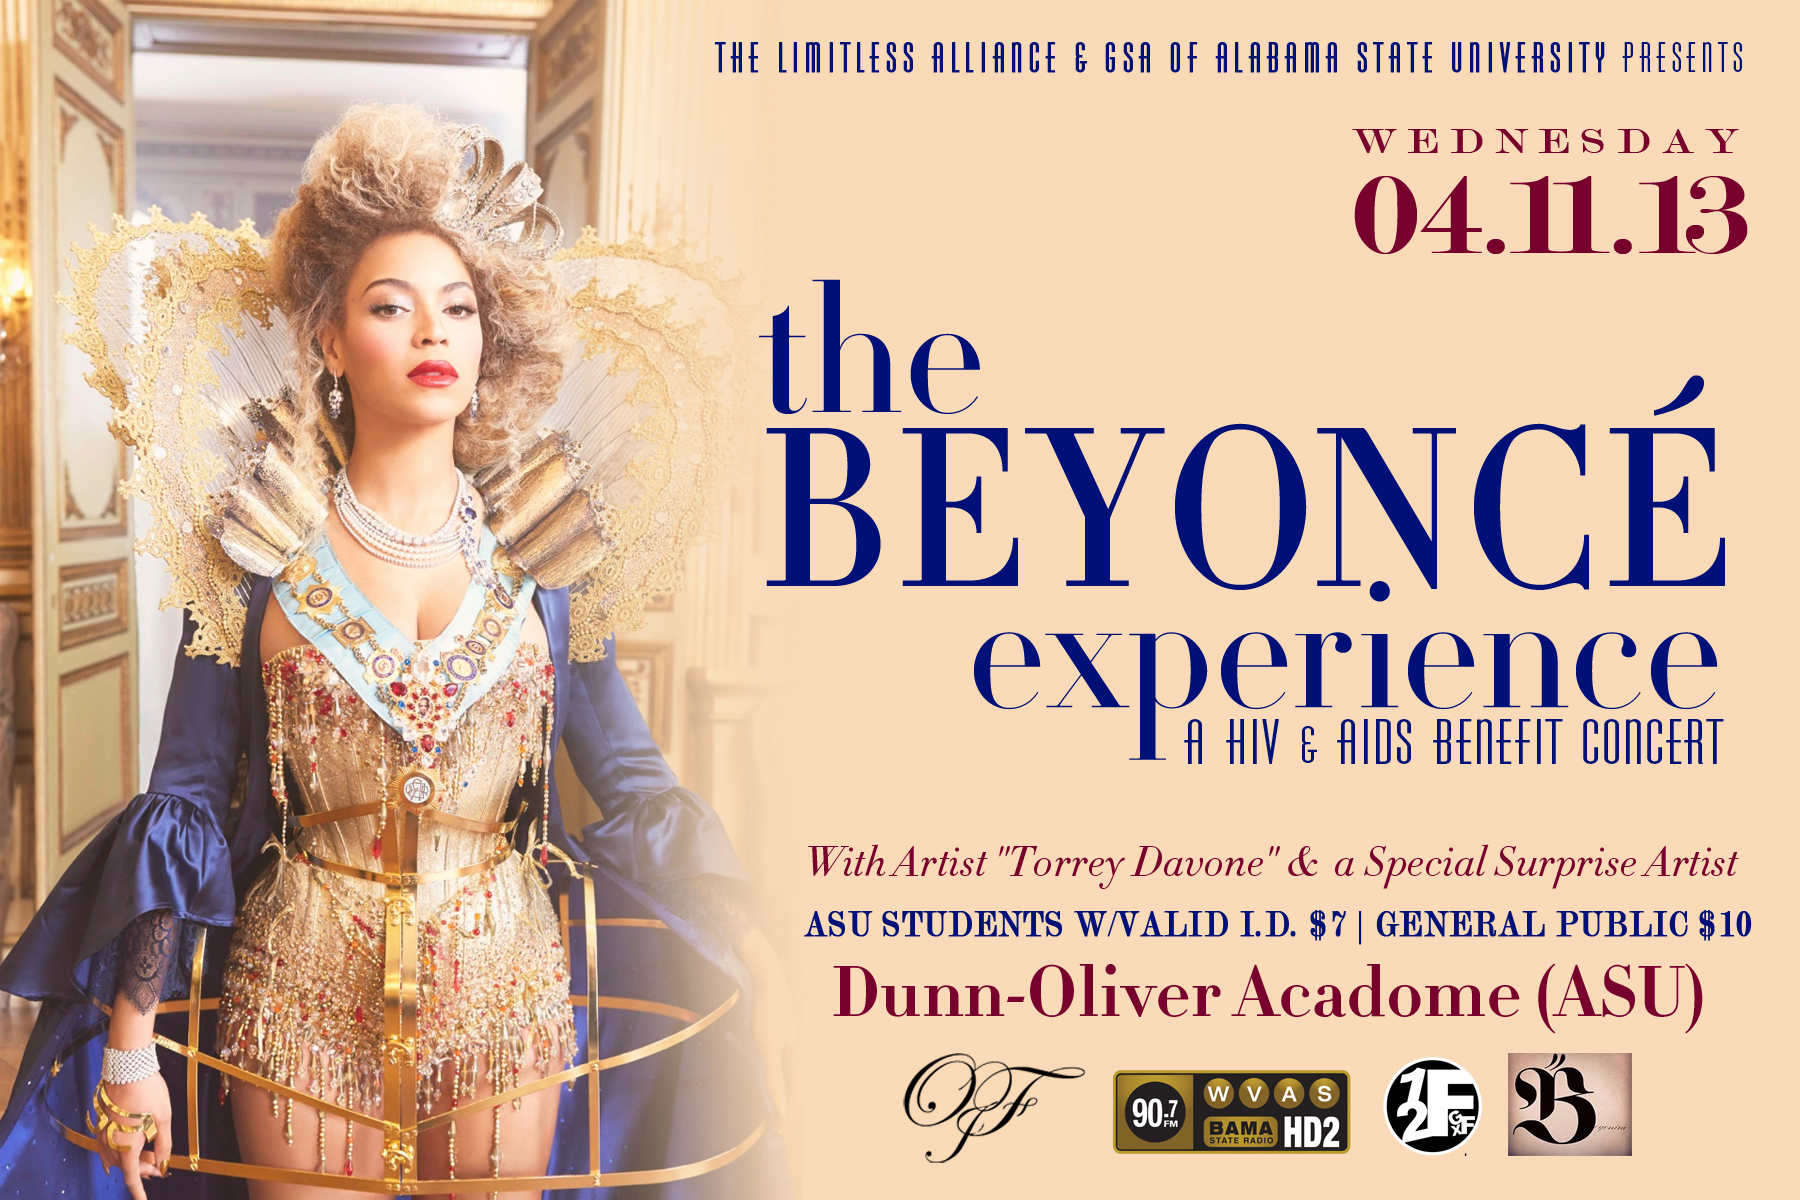 The Beyonce Experience 2013